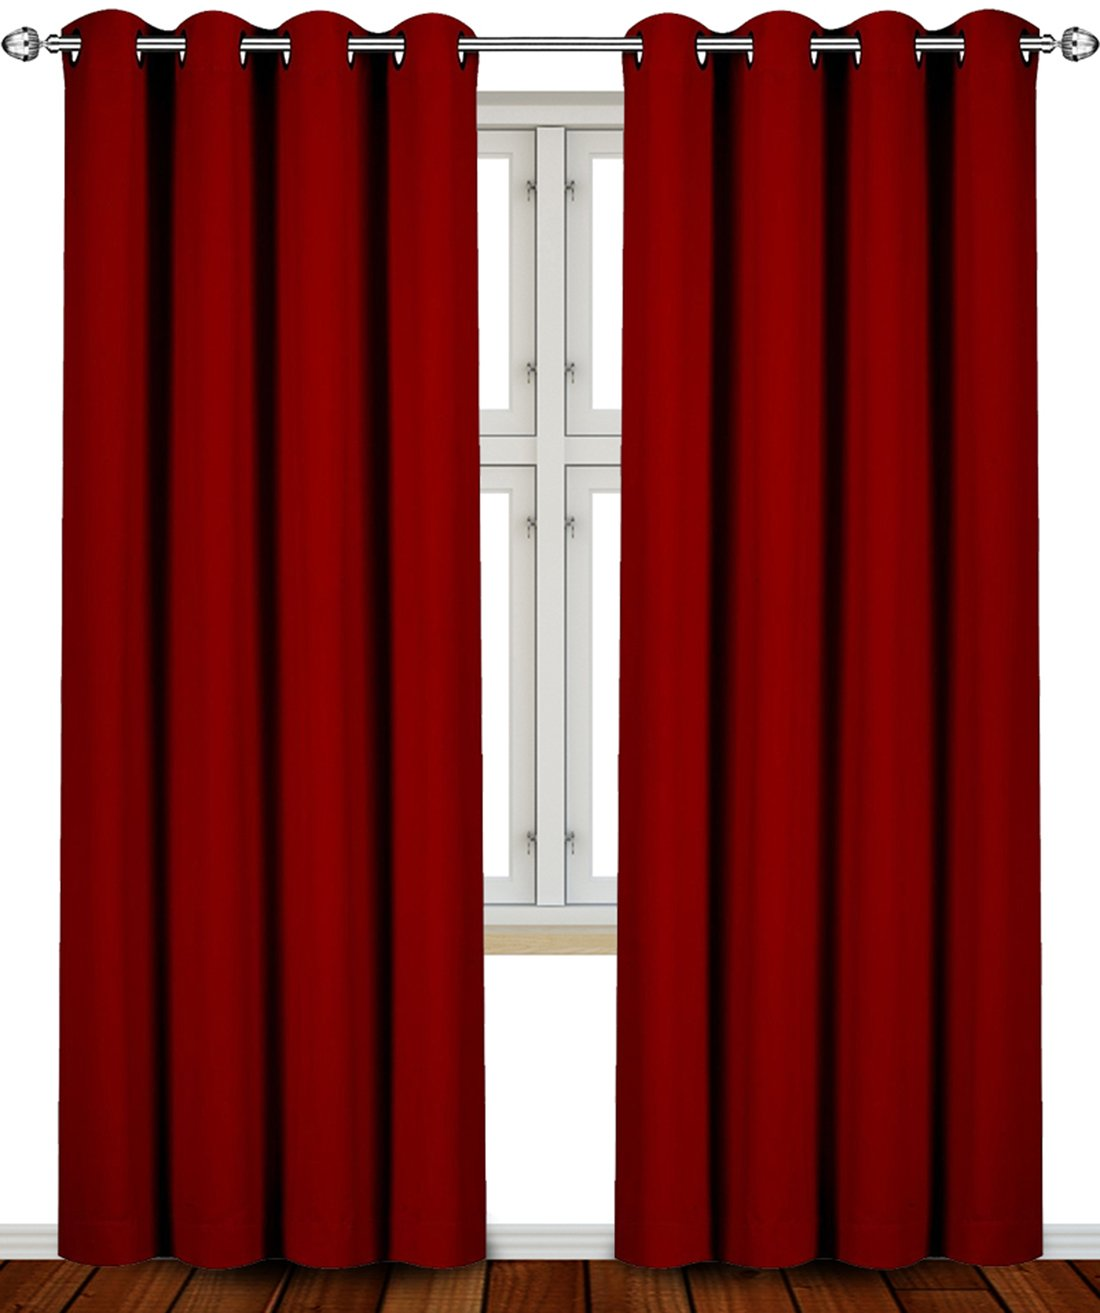 Blackout, Room Darkening Curtains Window Panel Drapes - (Burgundy